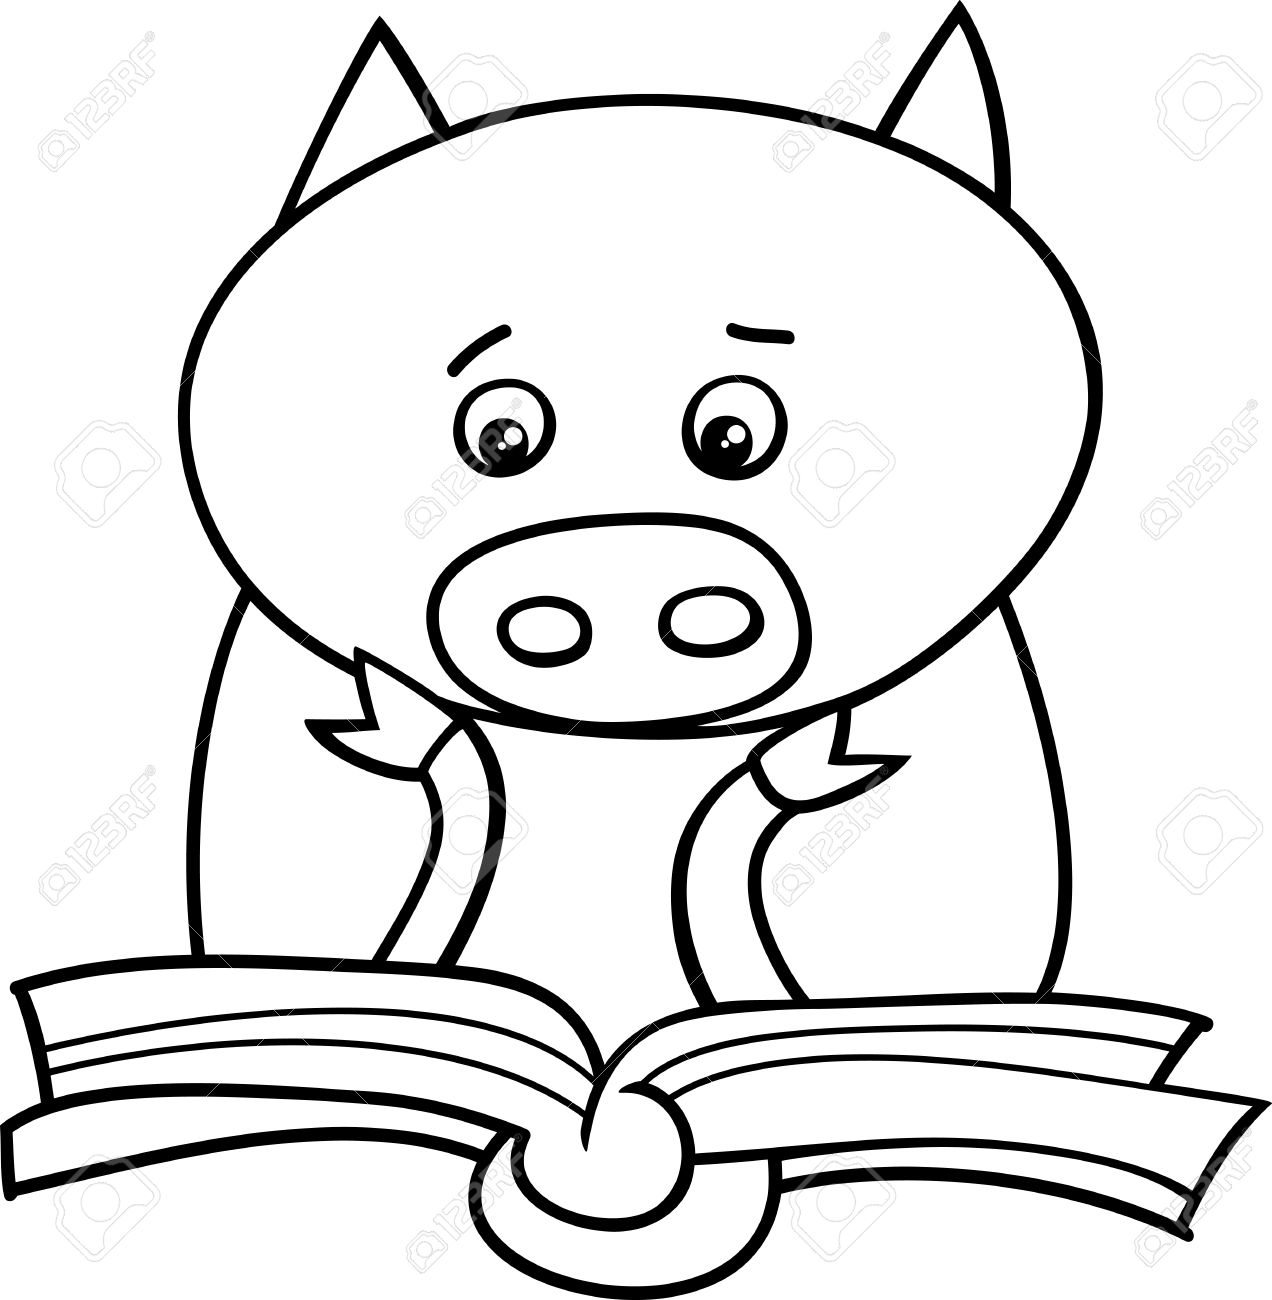 1272x1300 Black And White Cartoon Illustration Of Funny Pig Animal Character